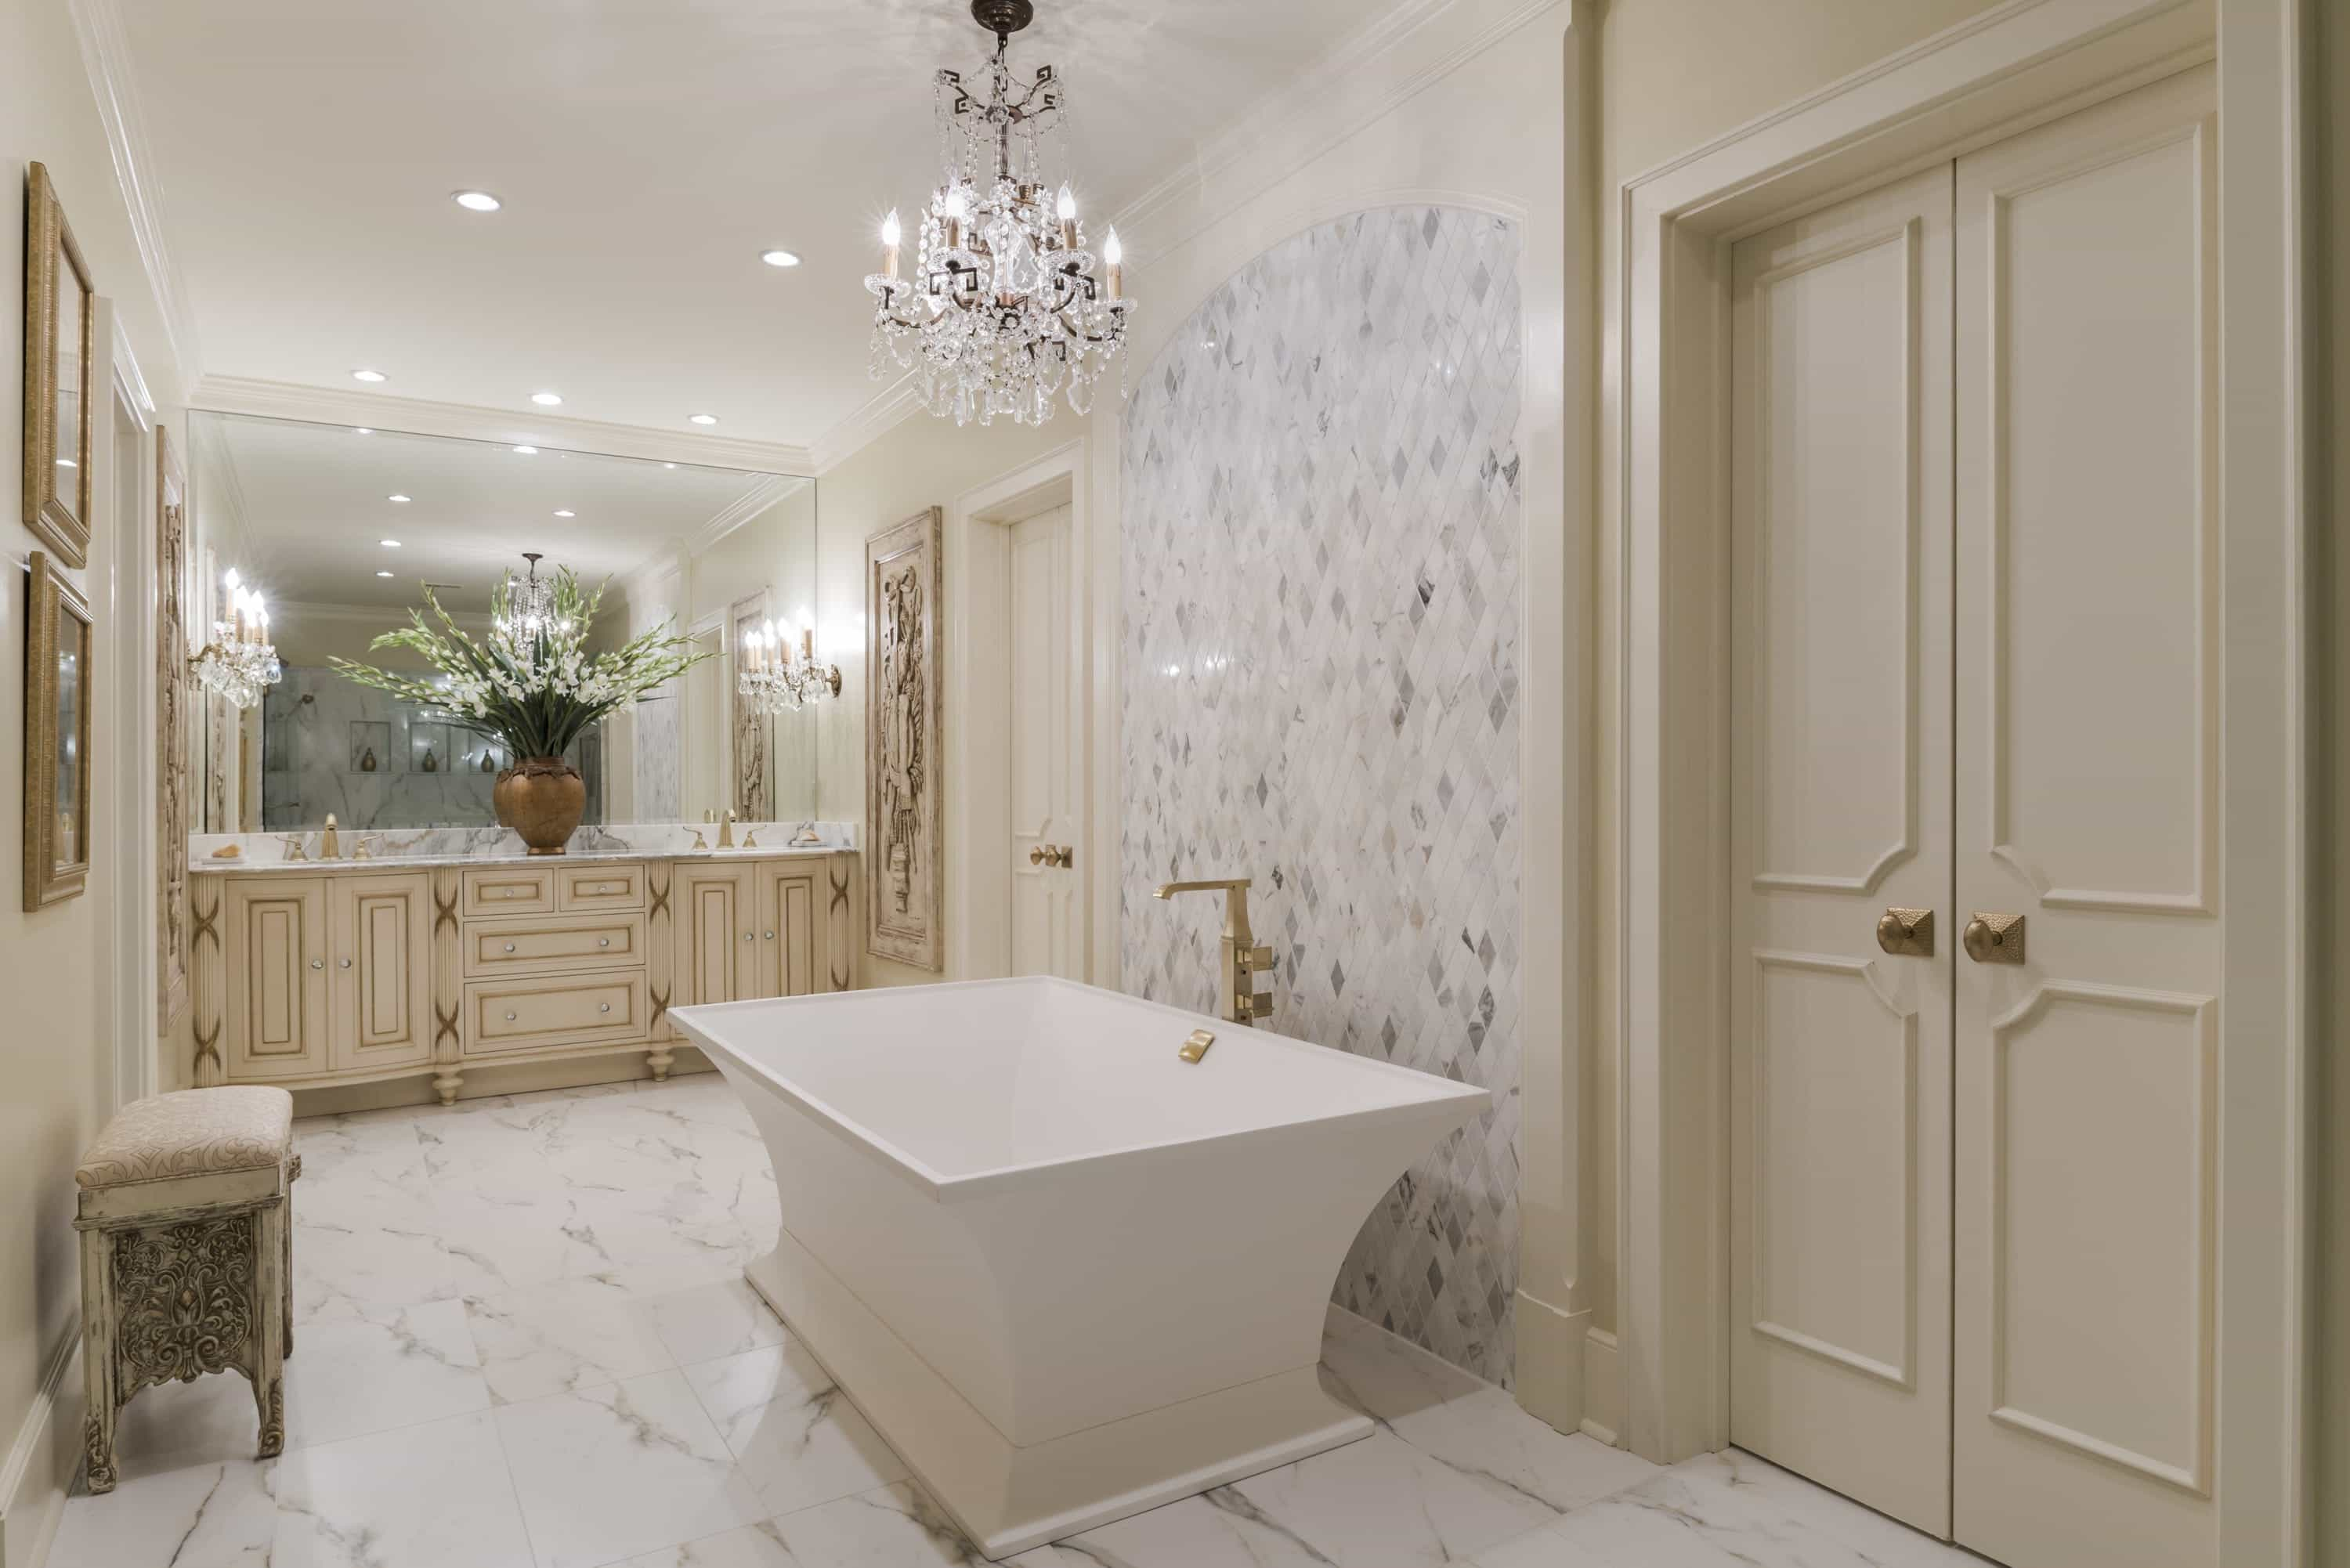 Sparkling Traditional Bathroom With Marble Floor (View 7 of 13)